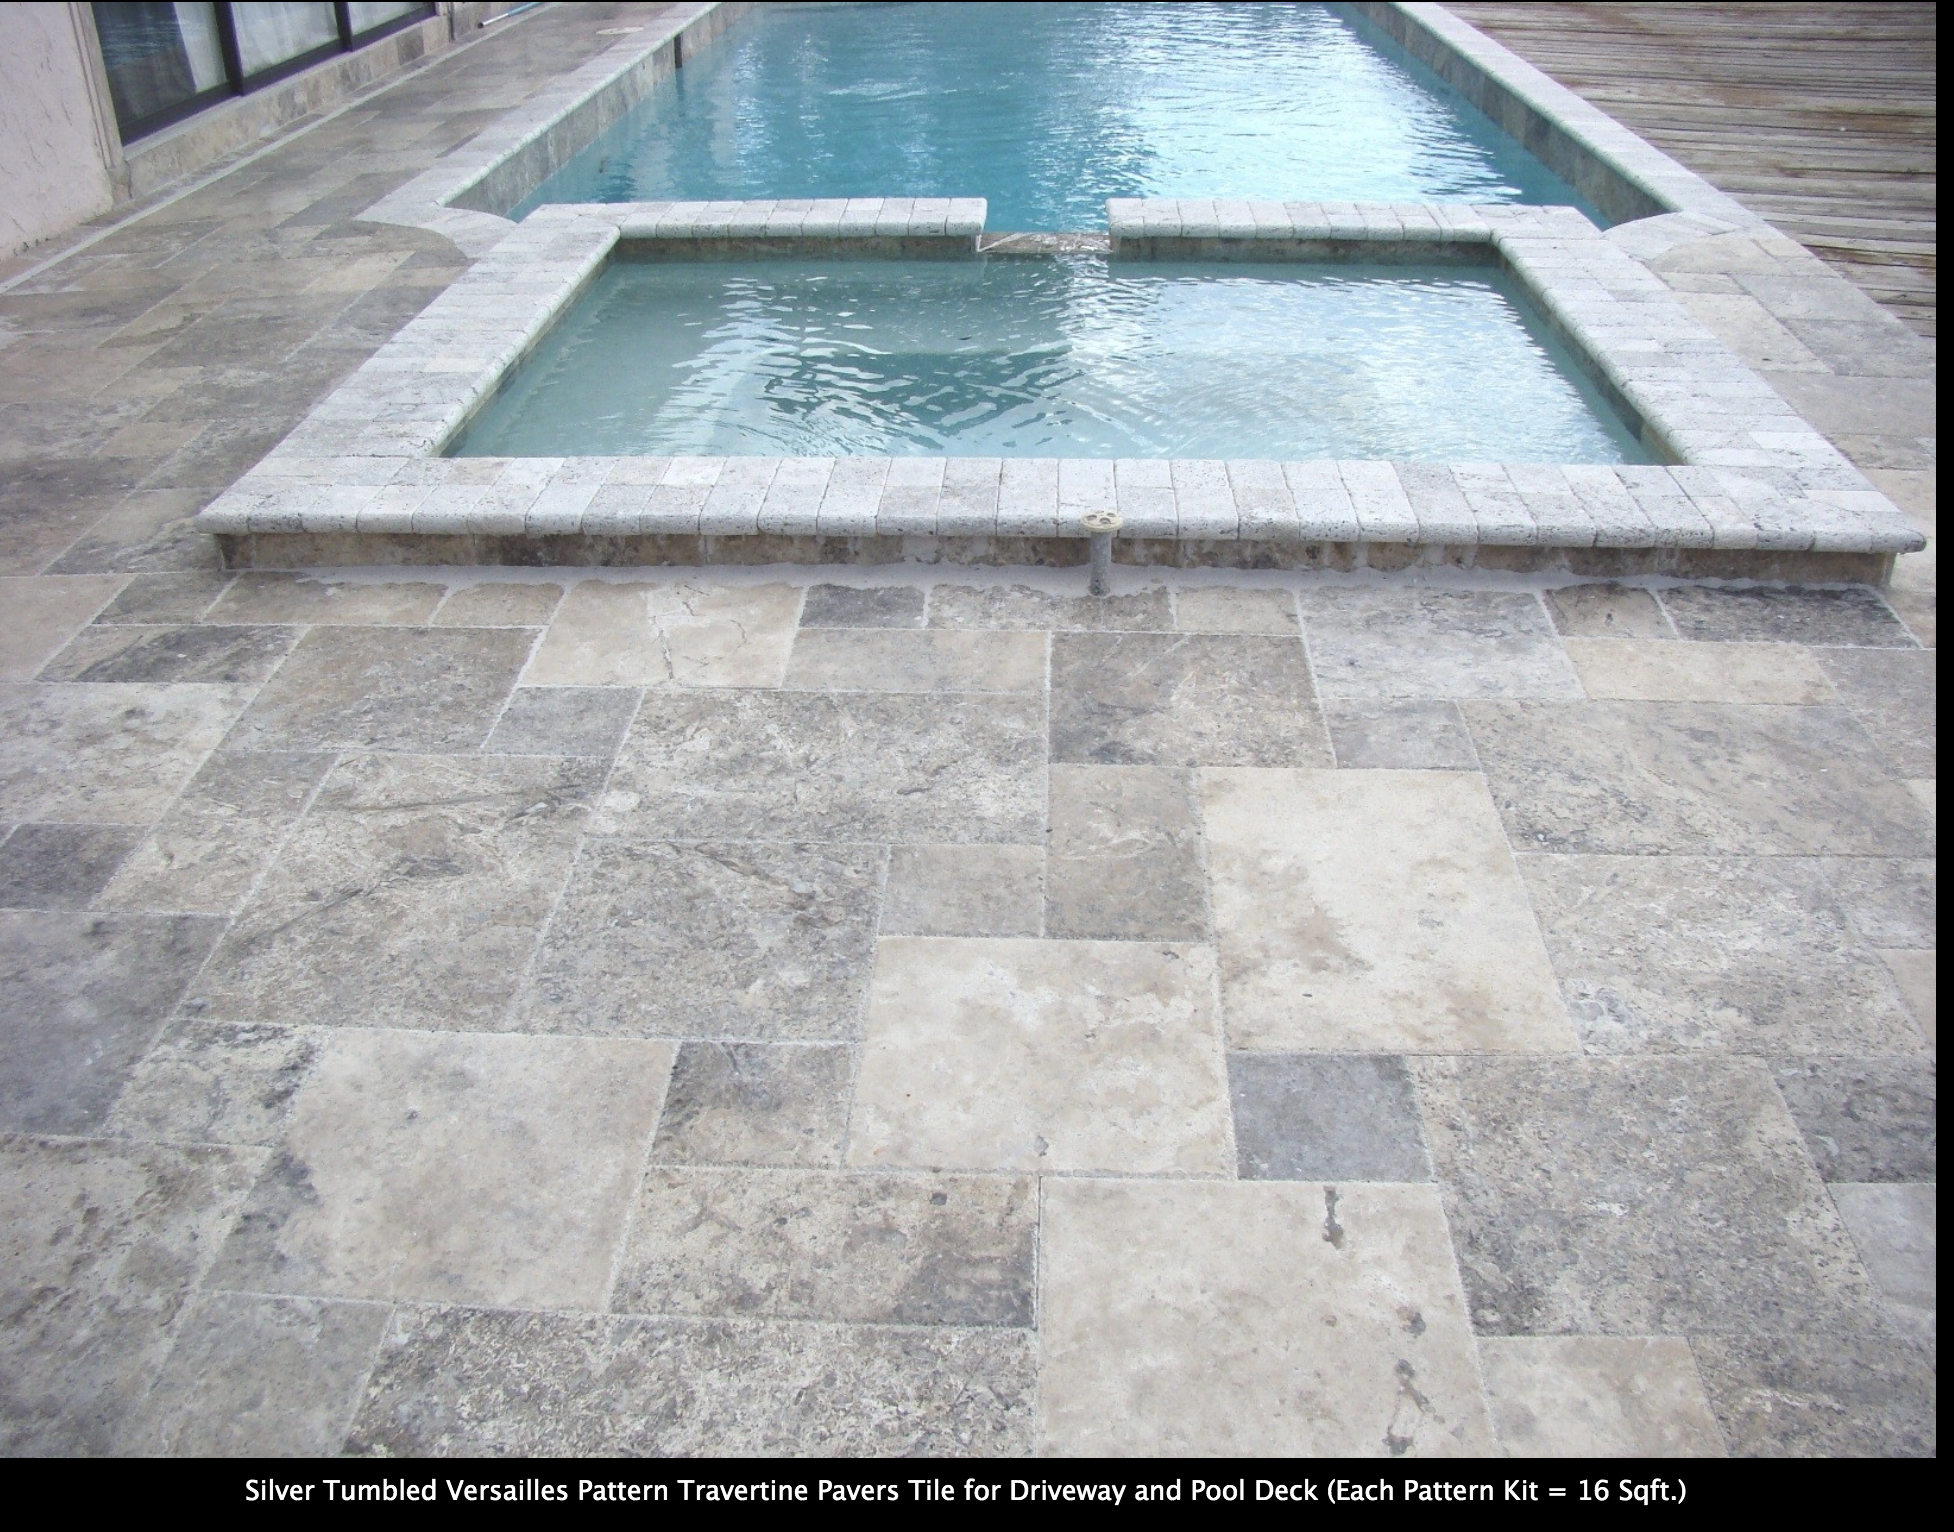 Silver Tumbled Versailles Pattern Travertine Pavers Tile For